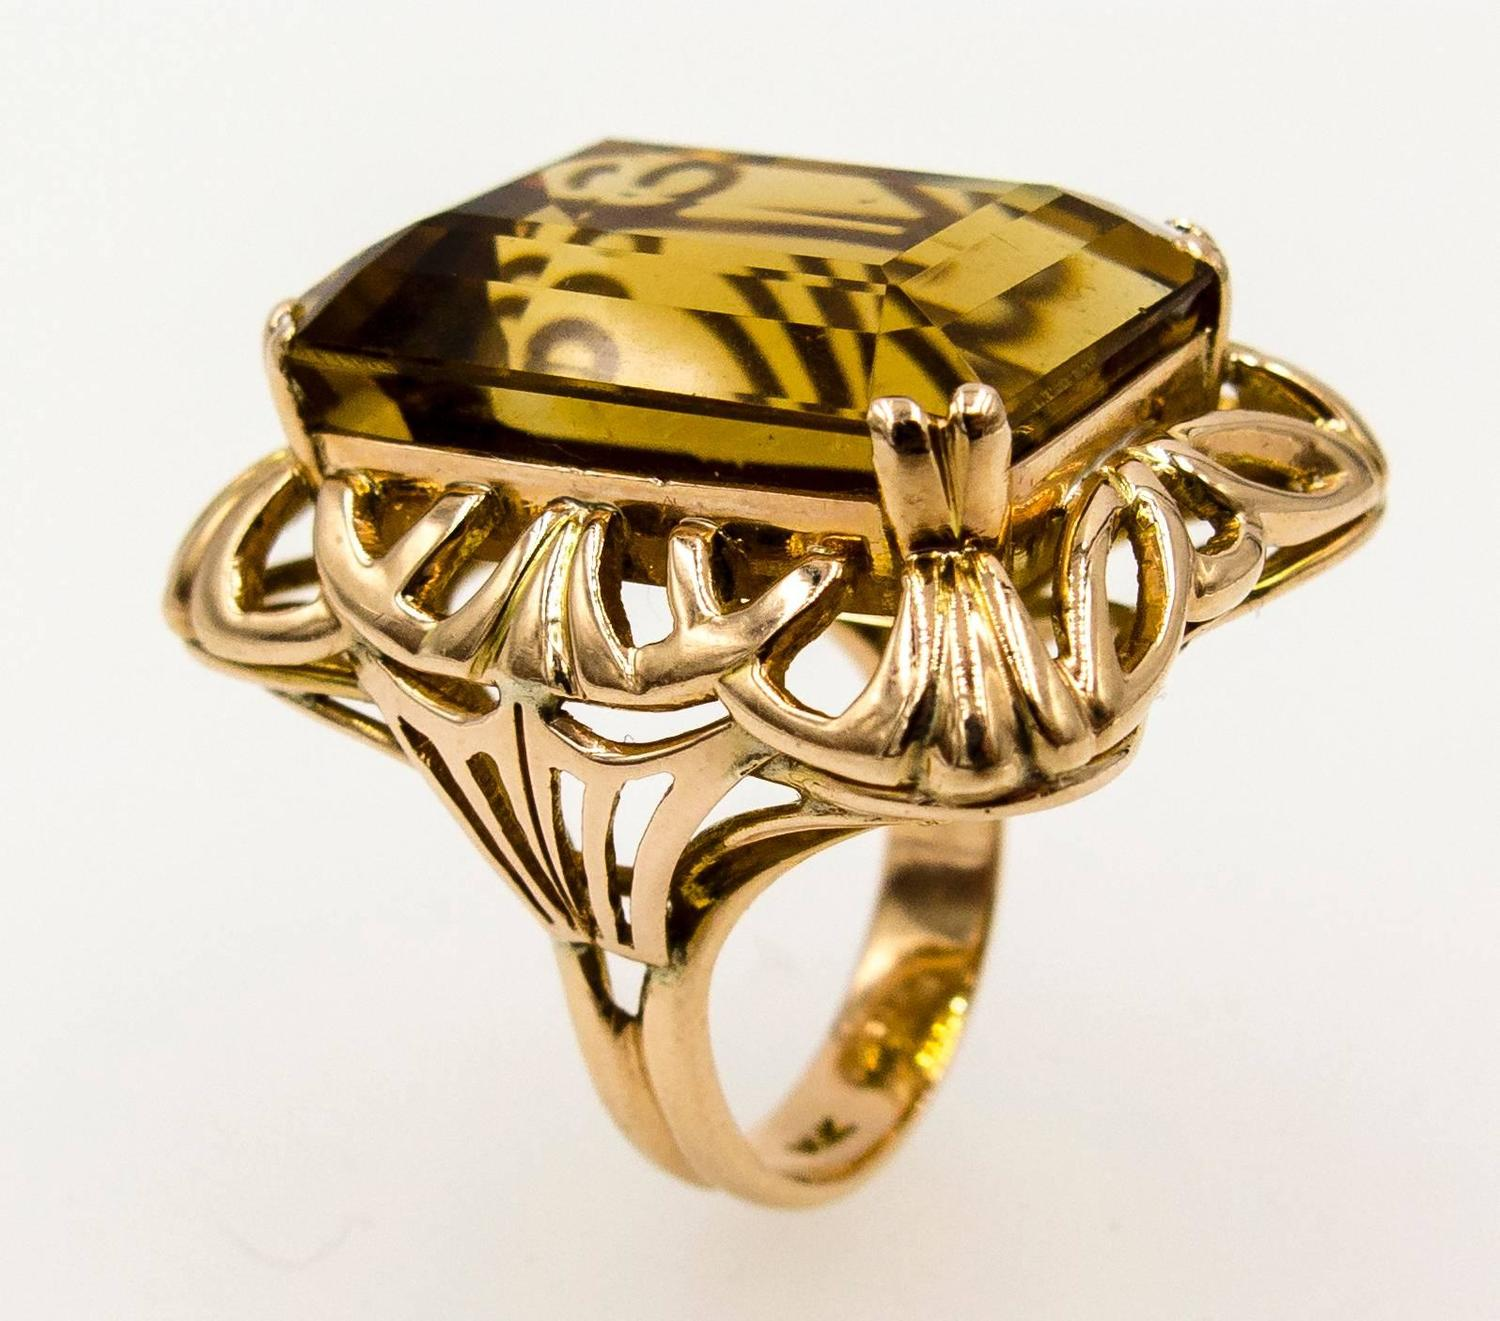 how to make a ring smaller at home